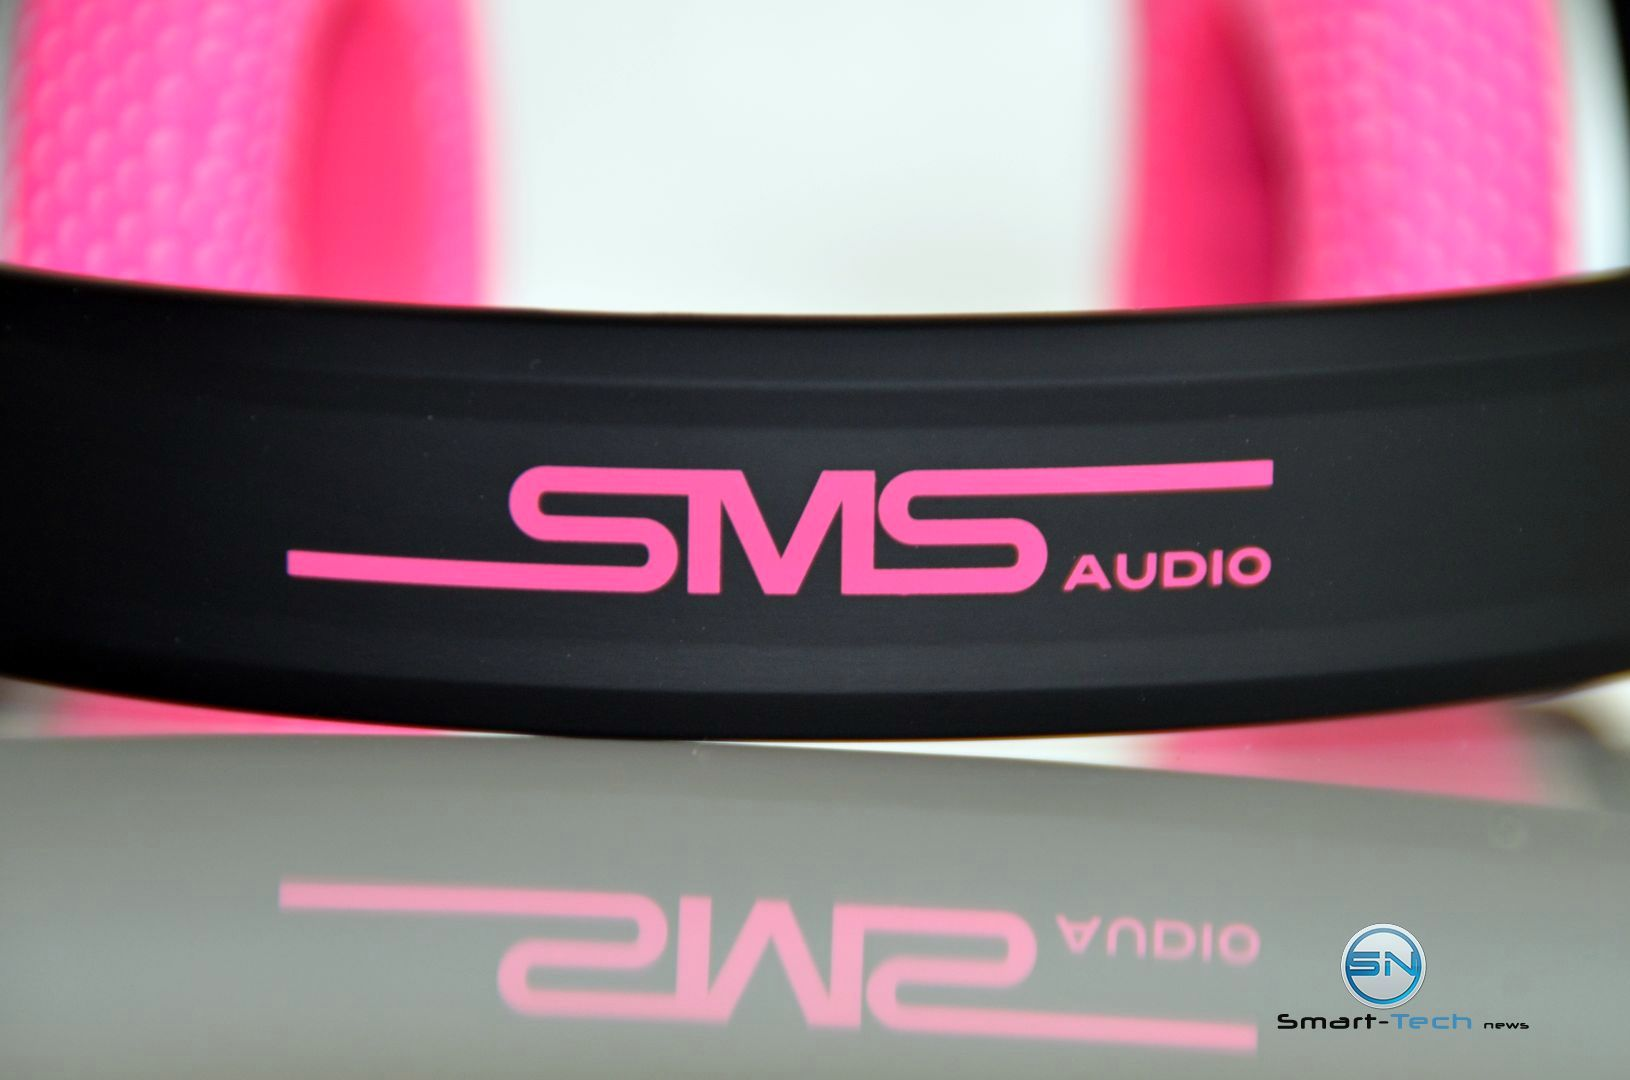 SMS AUDIO – SYNC by 50 On-Ear Wireless Sport